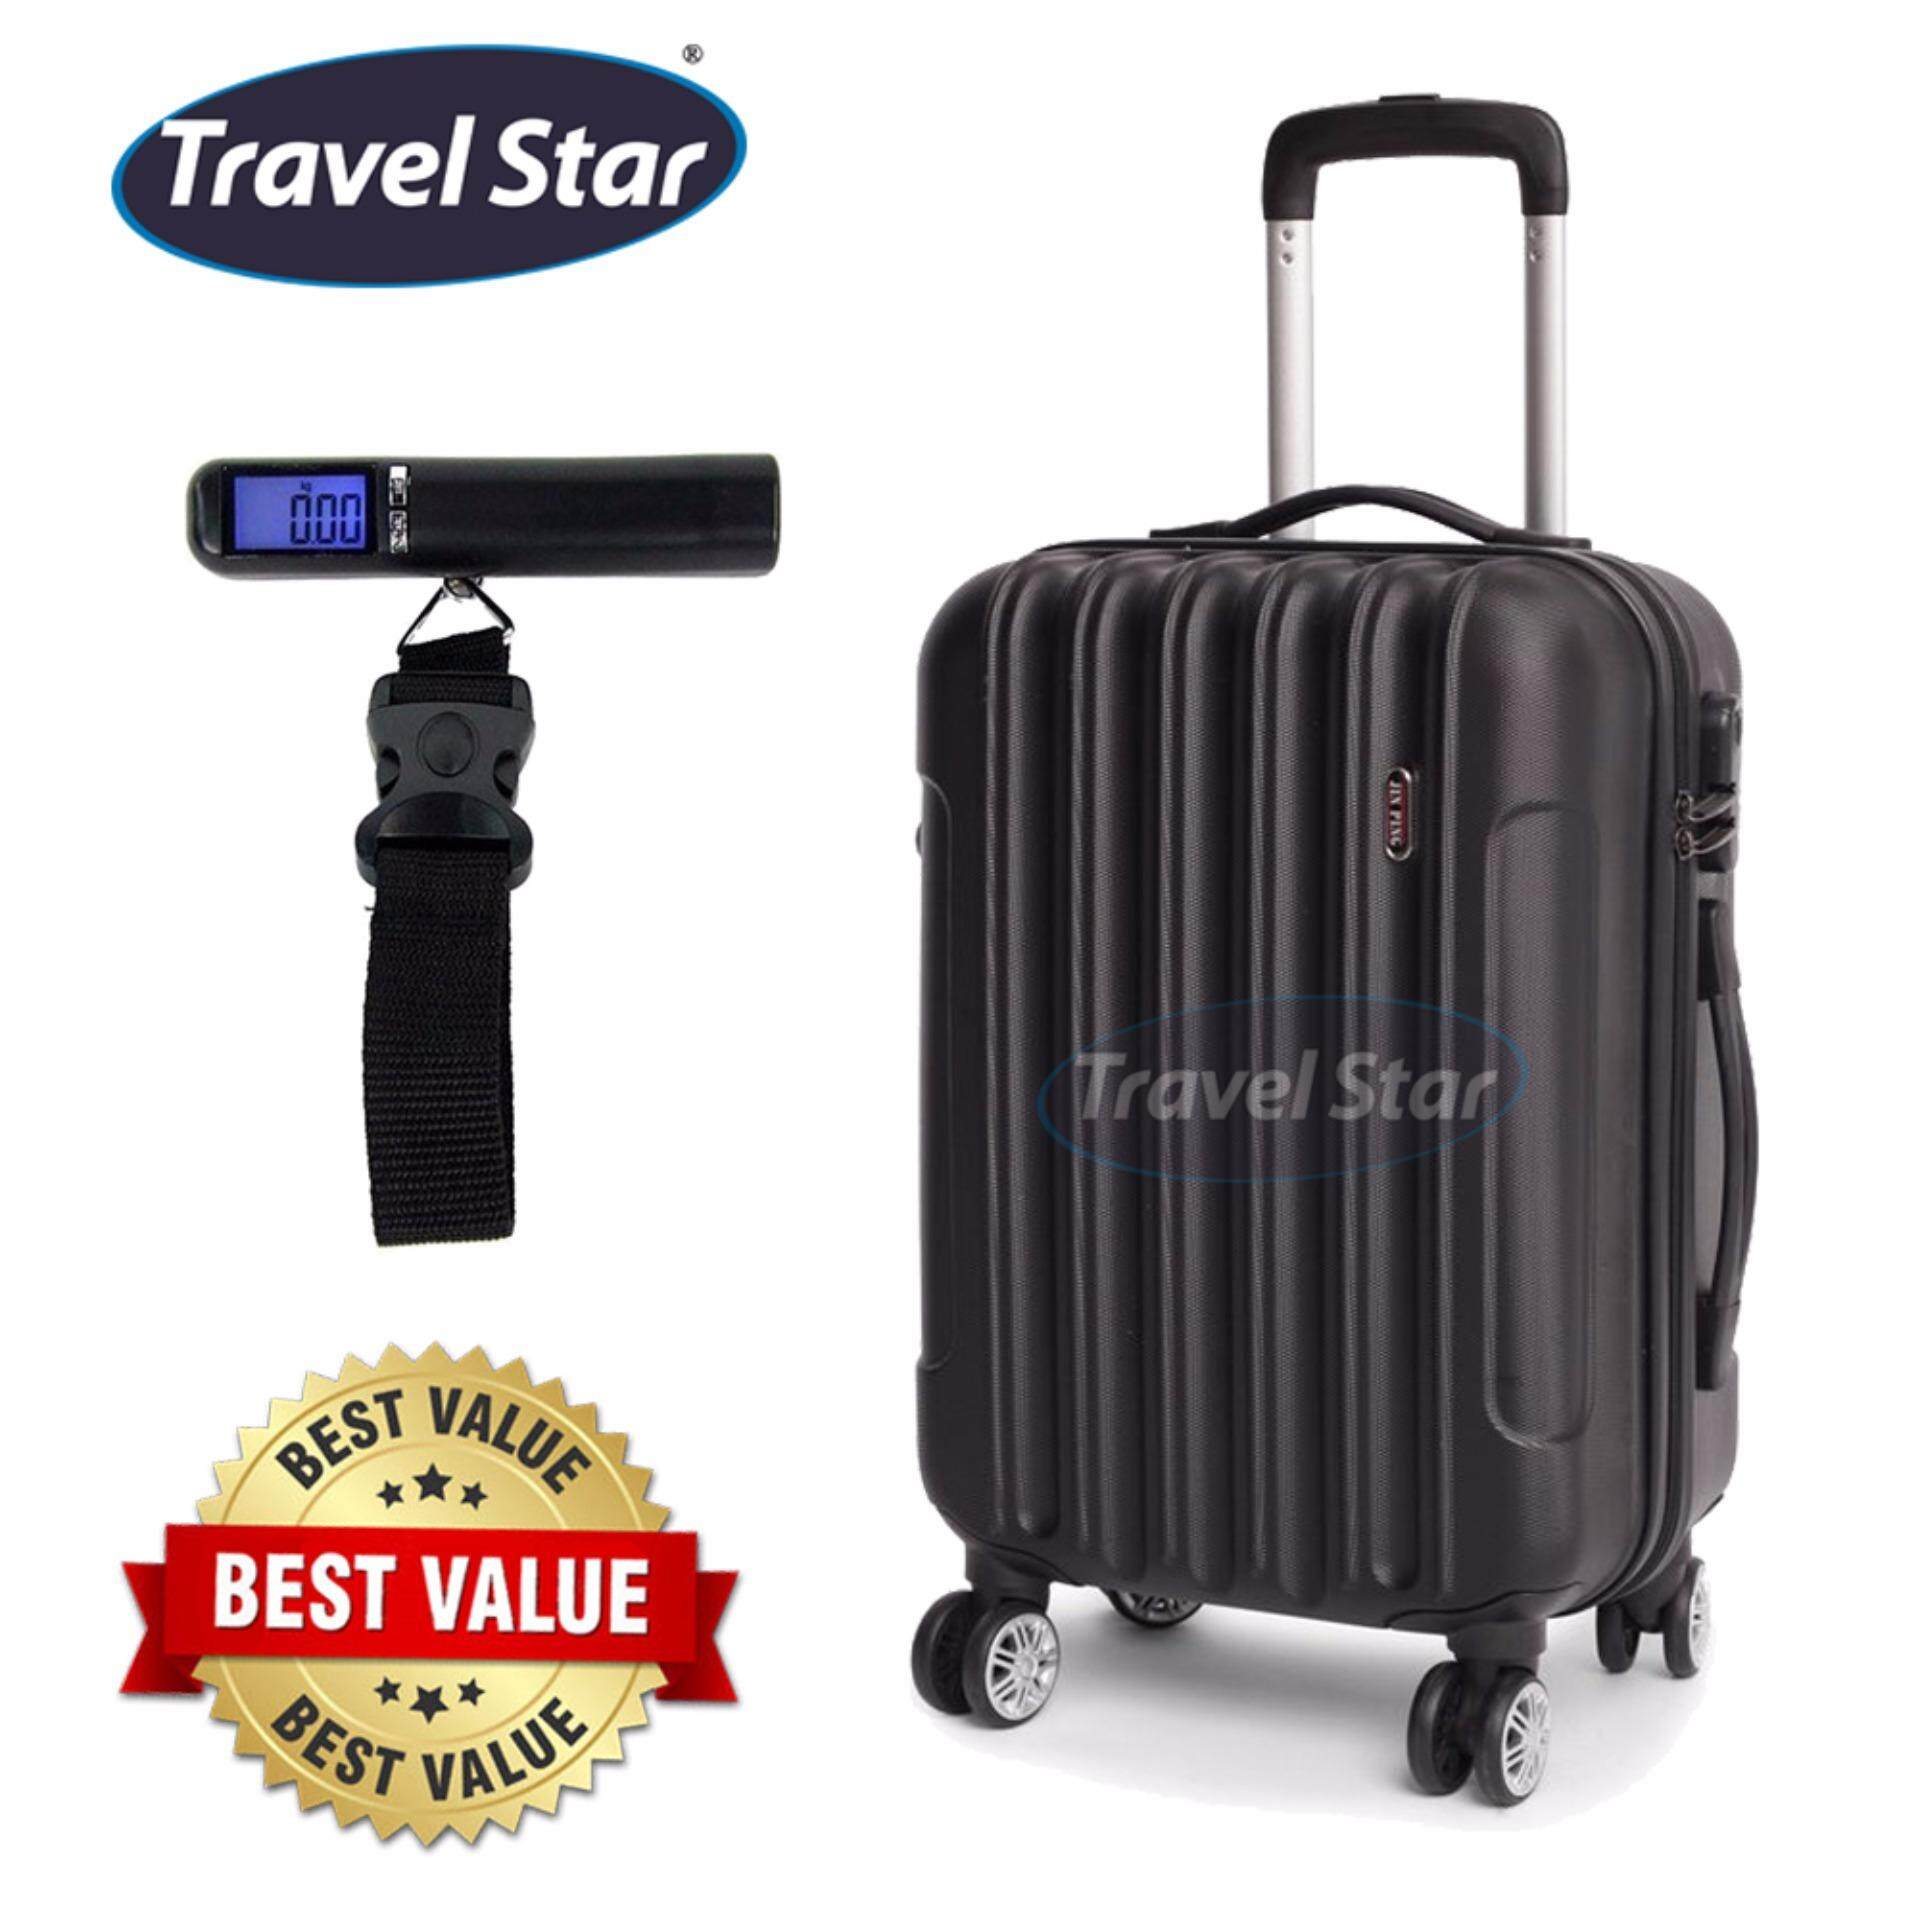 Bundle : Voyage Hard Case ABS Luggage Bagasi- 20 Inches (Black) + Portable Digital Luggage Scale with LCD Display